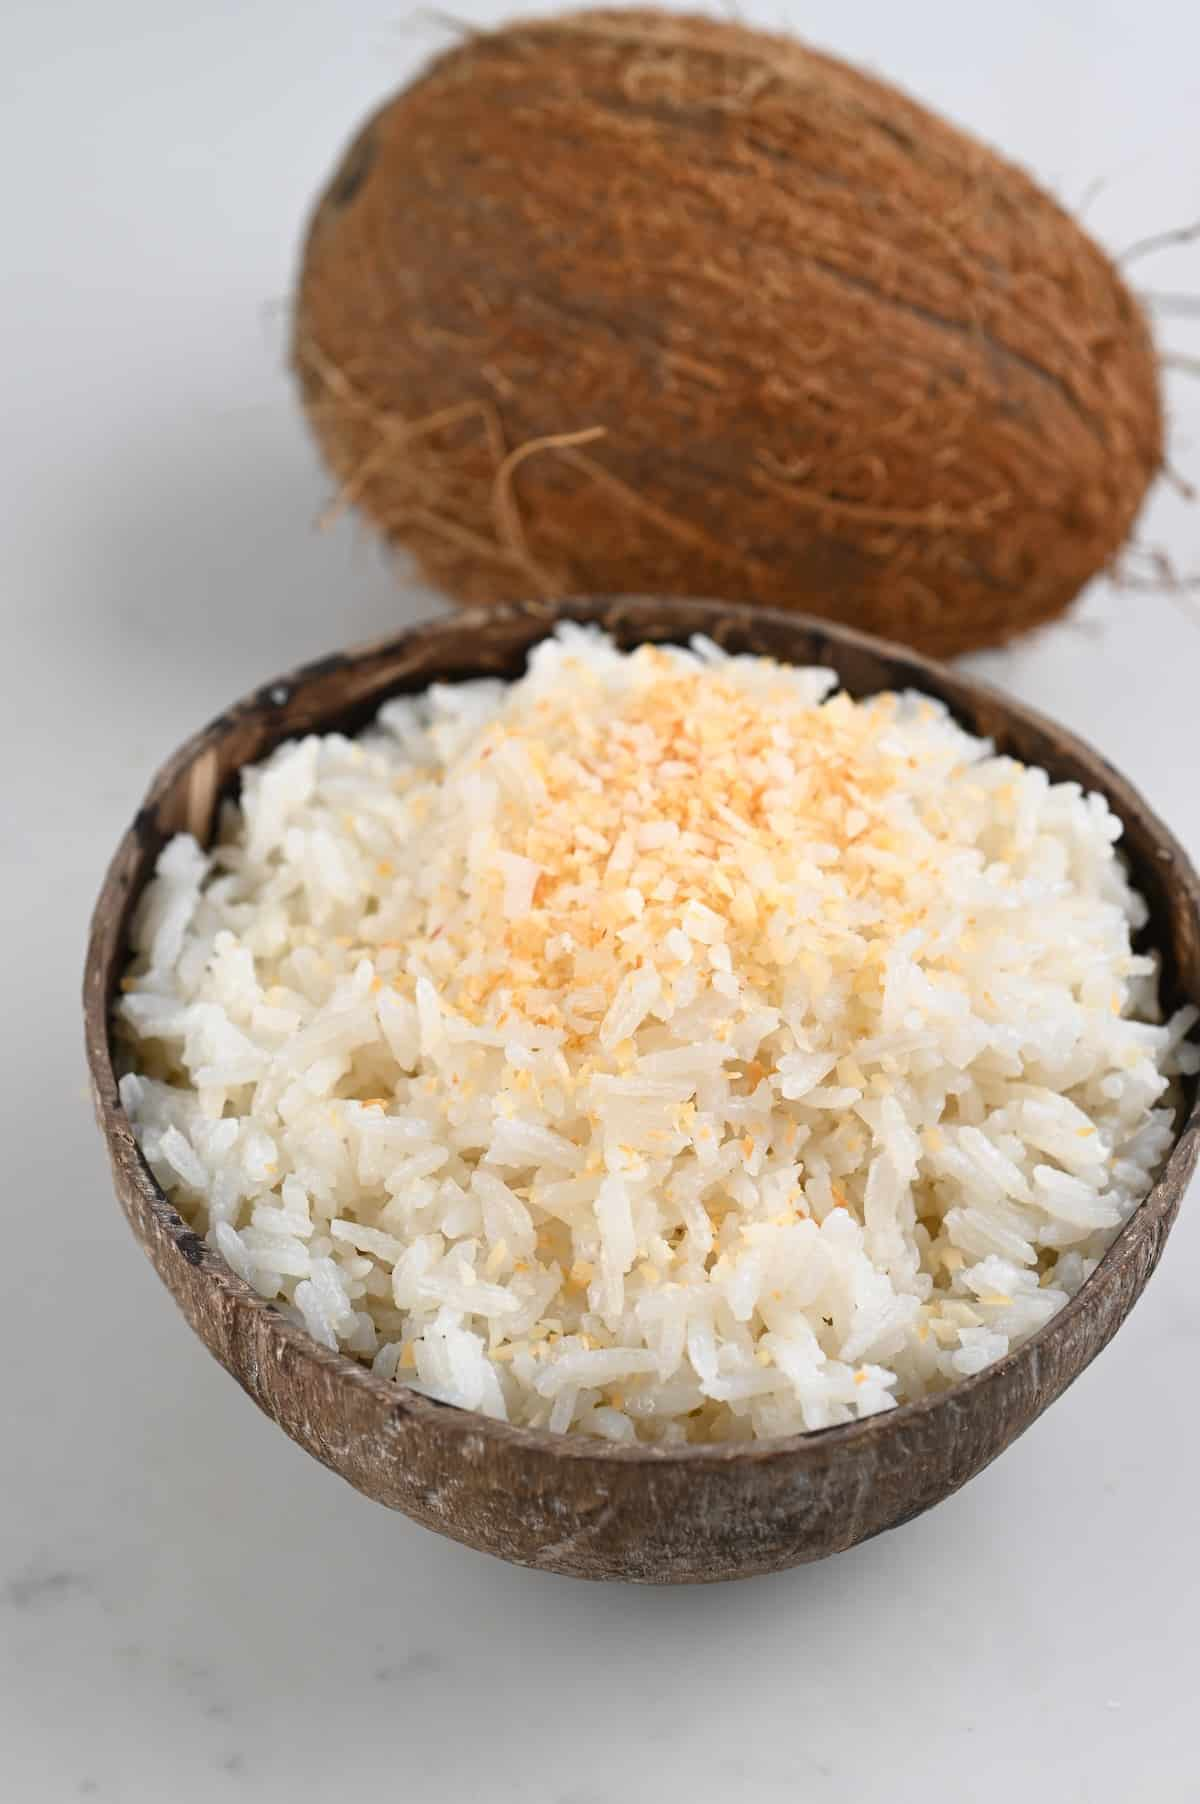 A coconut bowl filled with coconut rice and a whole coconut behind it